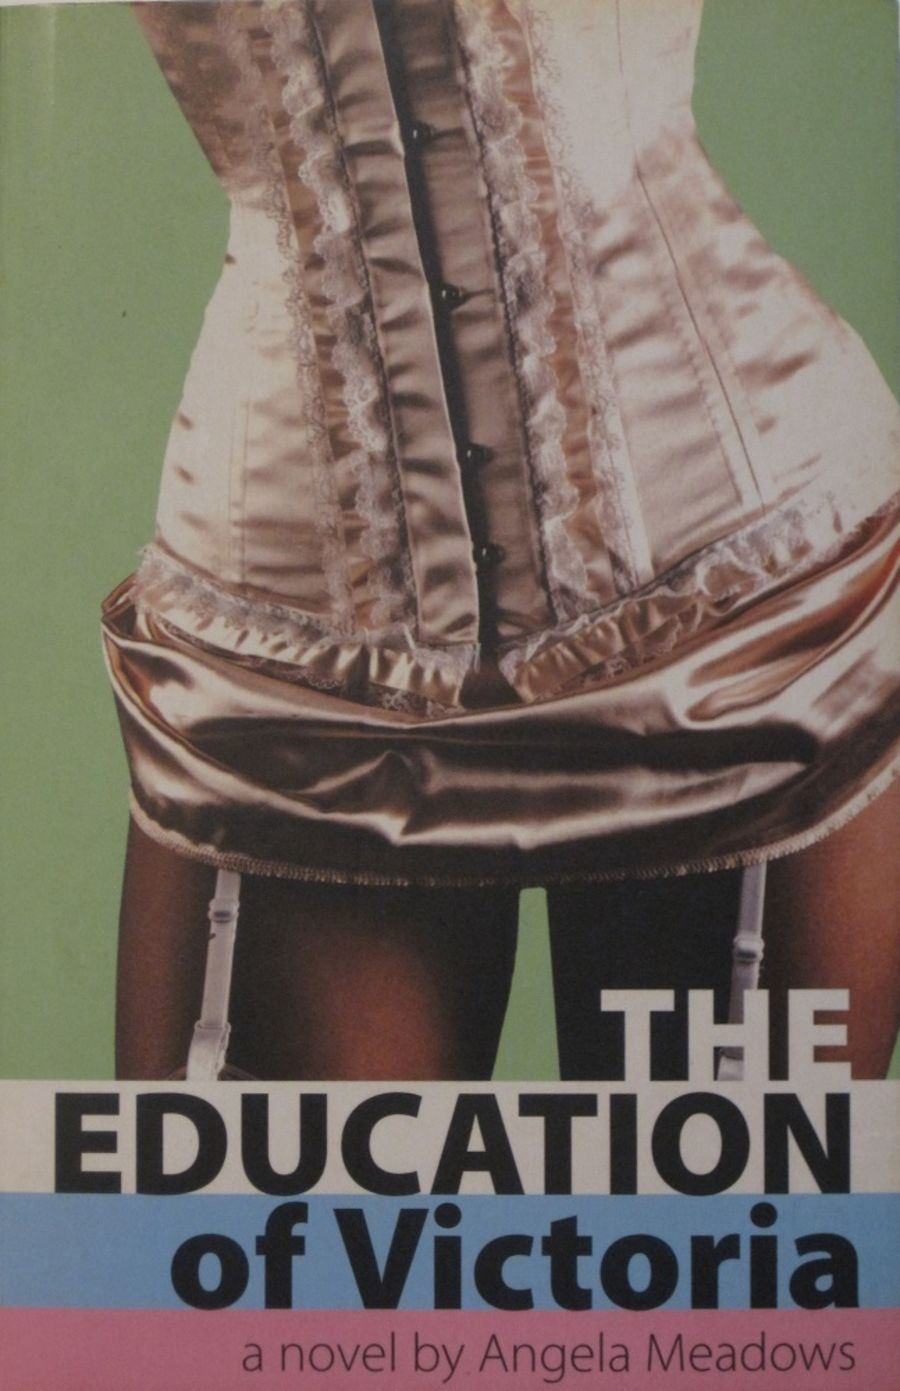 THE EDUCATION OF VICTORIA.  2009 EROTIC FICTION PAPERBACK BOOK.